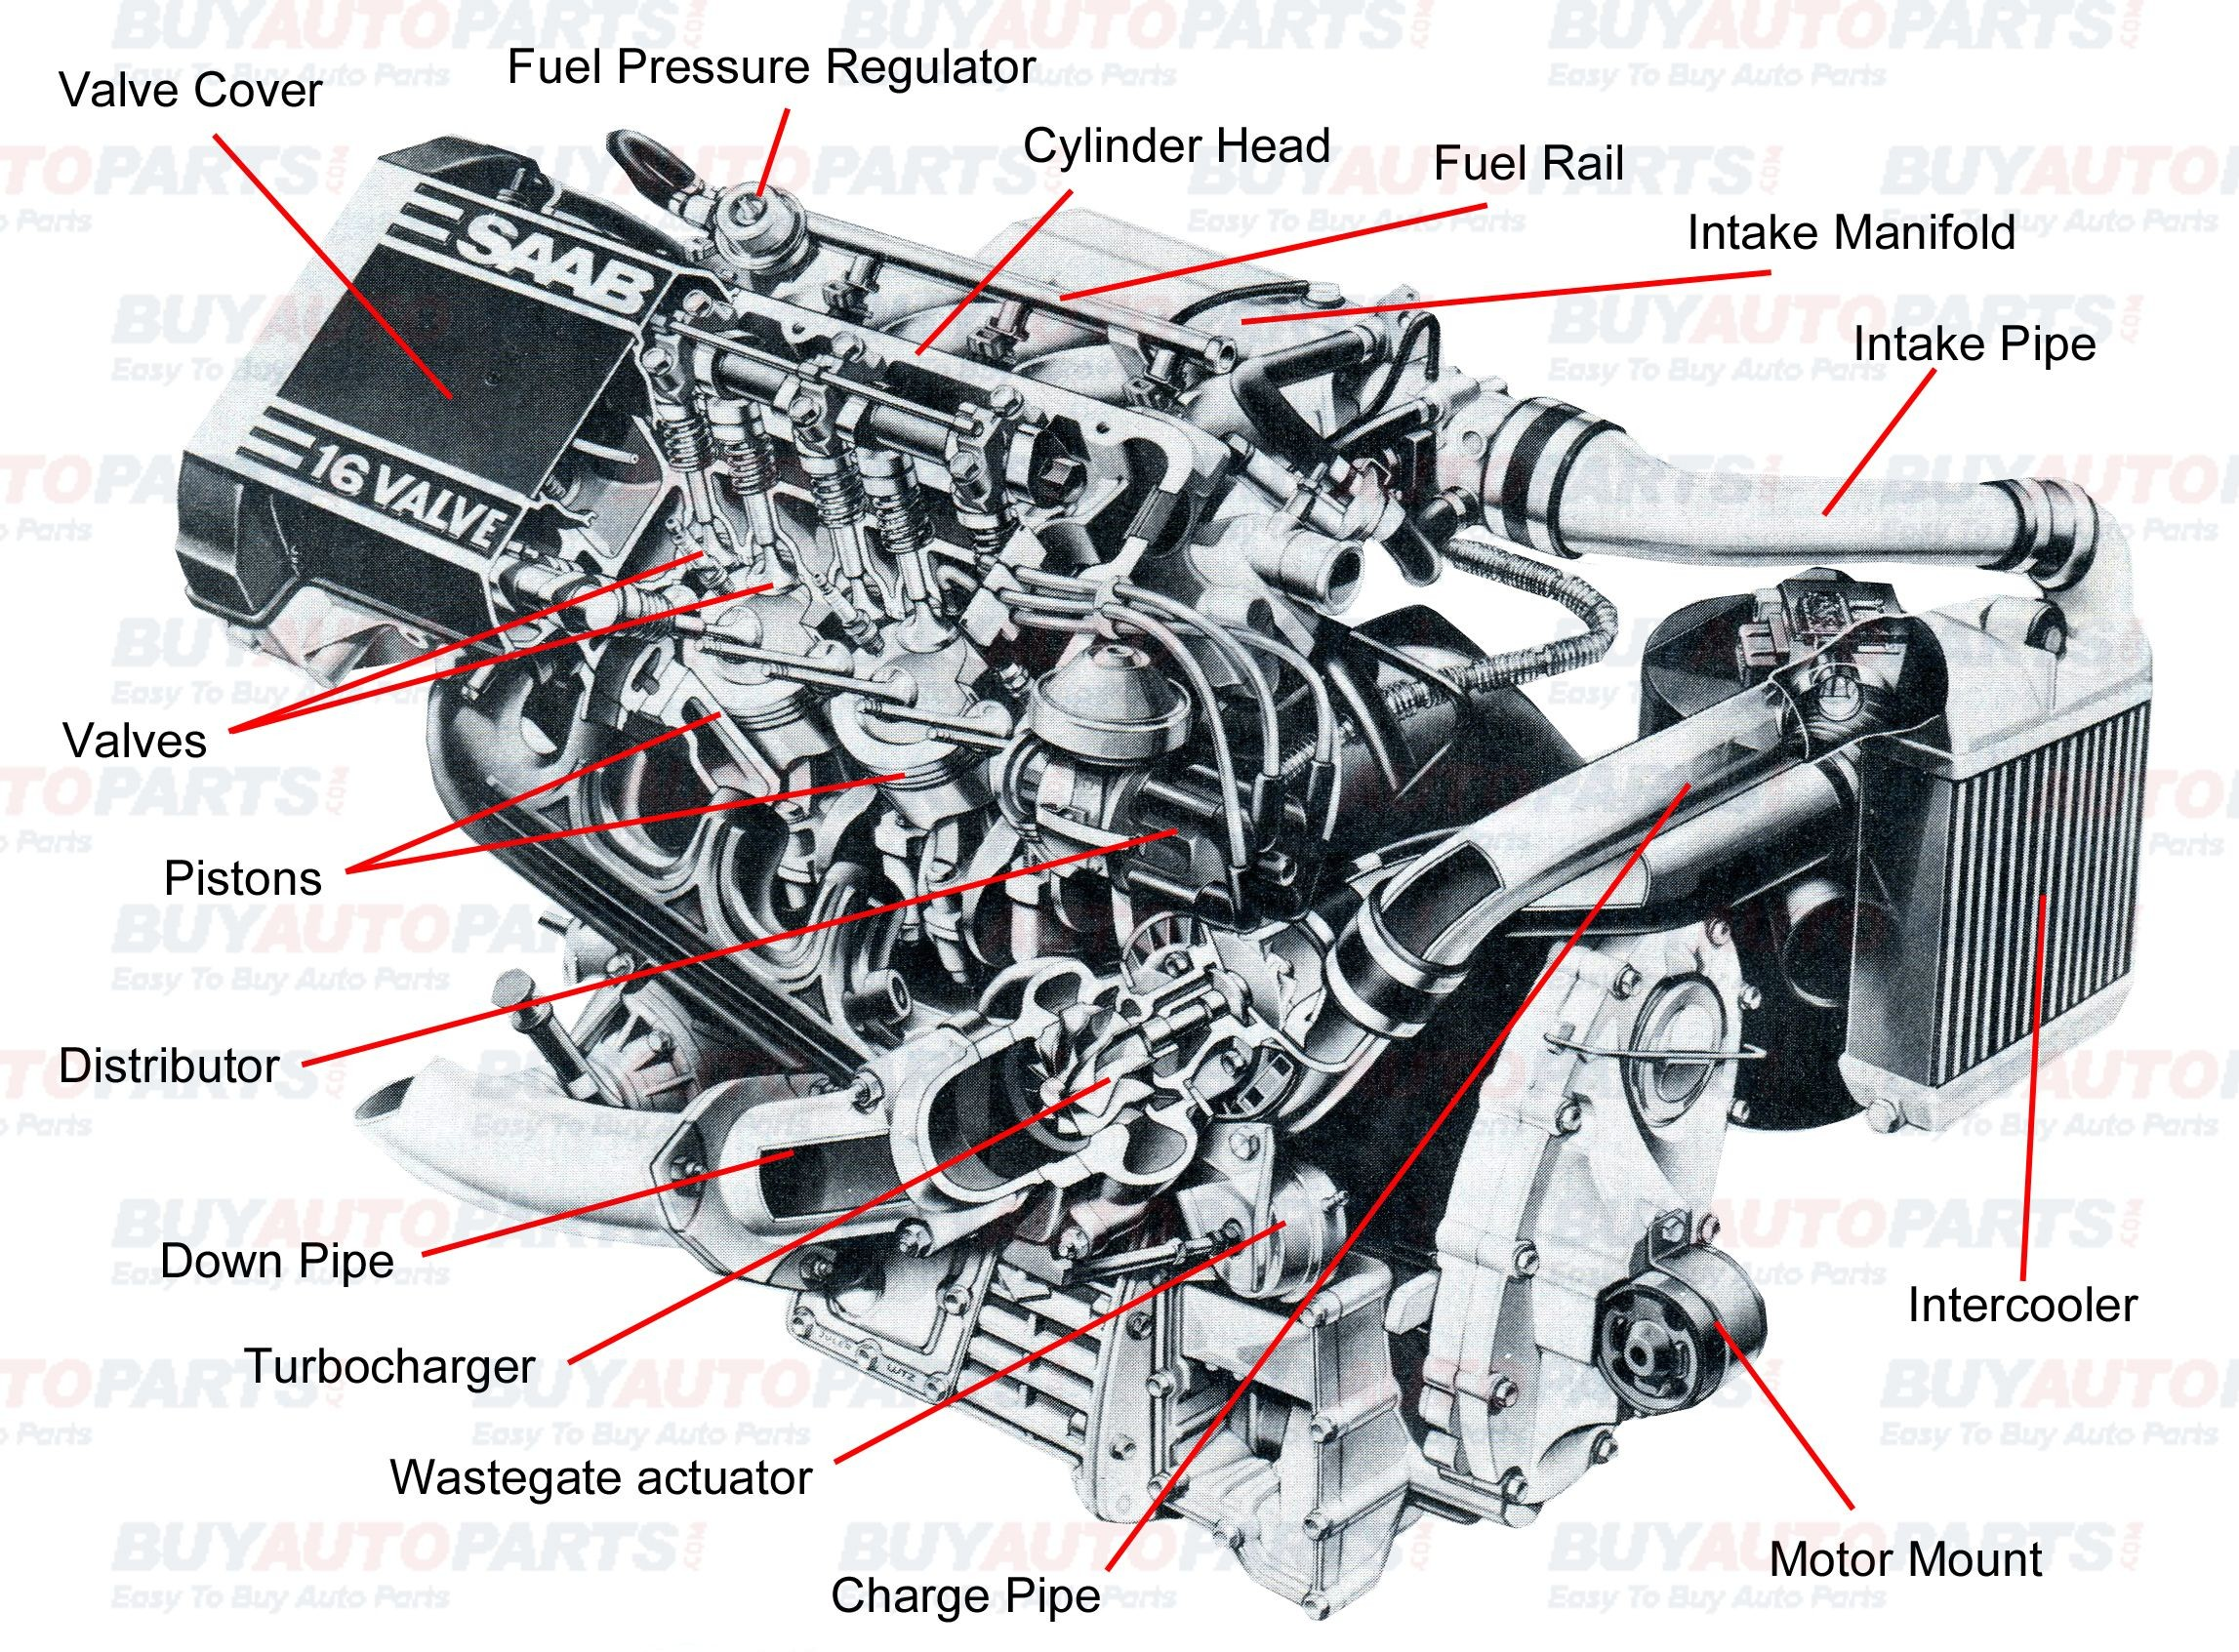 Diagram Of A Engine All Internal Bustion Engines Have the Same Basic Ponents the Of Diagram Of A Engine